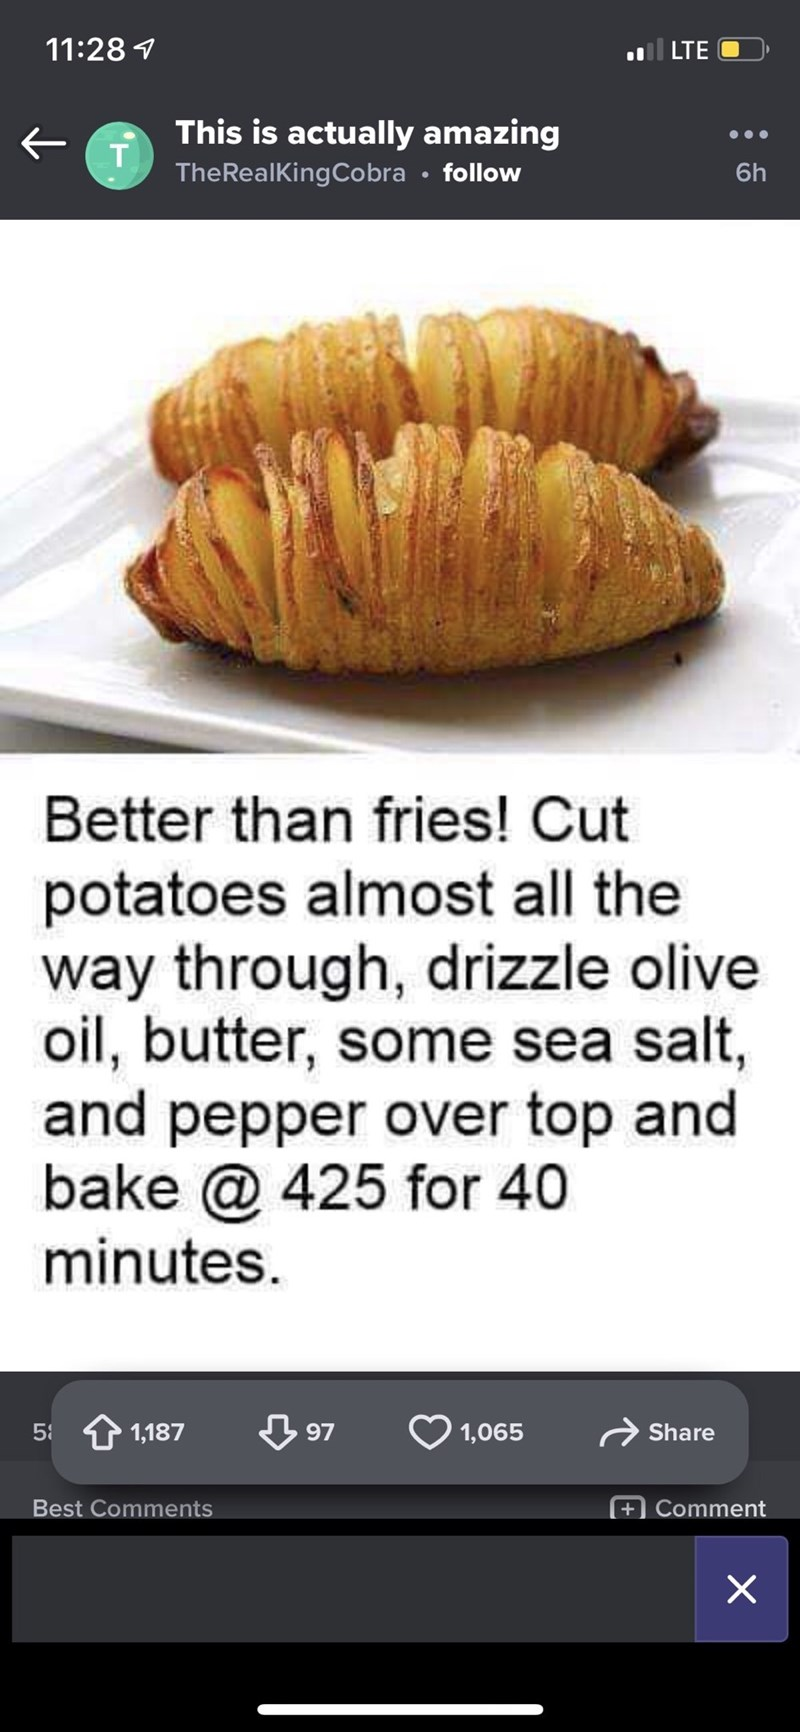 Junk food - 11:28 1 l LTE This is actually amazing т TheRealKingCobra • follow 6h Better than fries! Cut potatoes almost all the way through, drizzle olive oil, butter, some sea salt, and pepper over top and bake @ 425 for 40 minutes. 58 1,187 97 1,065 Share Best Comments +) Comment